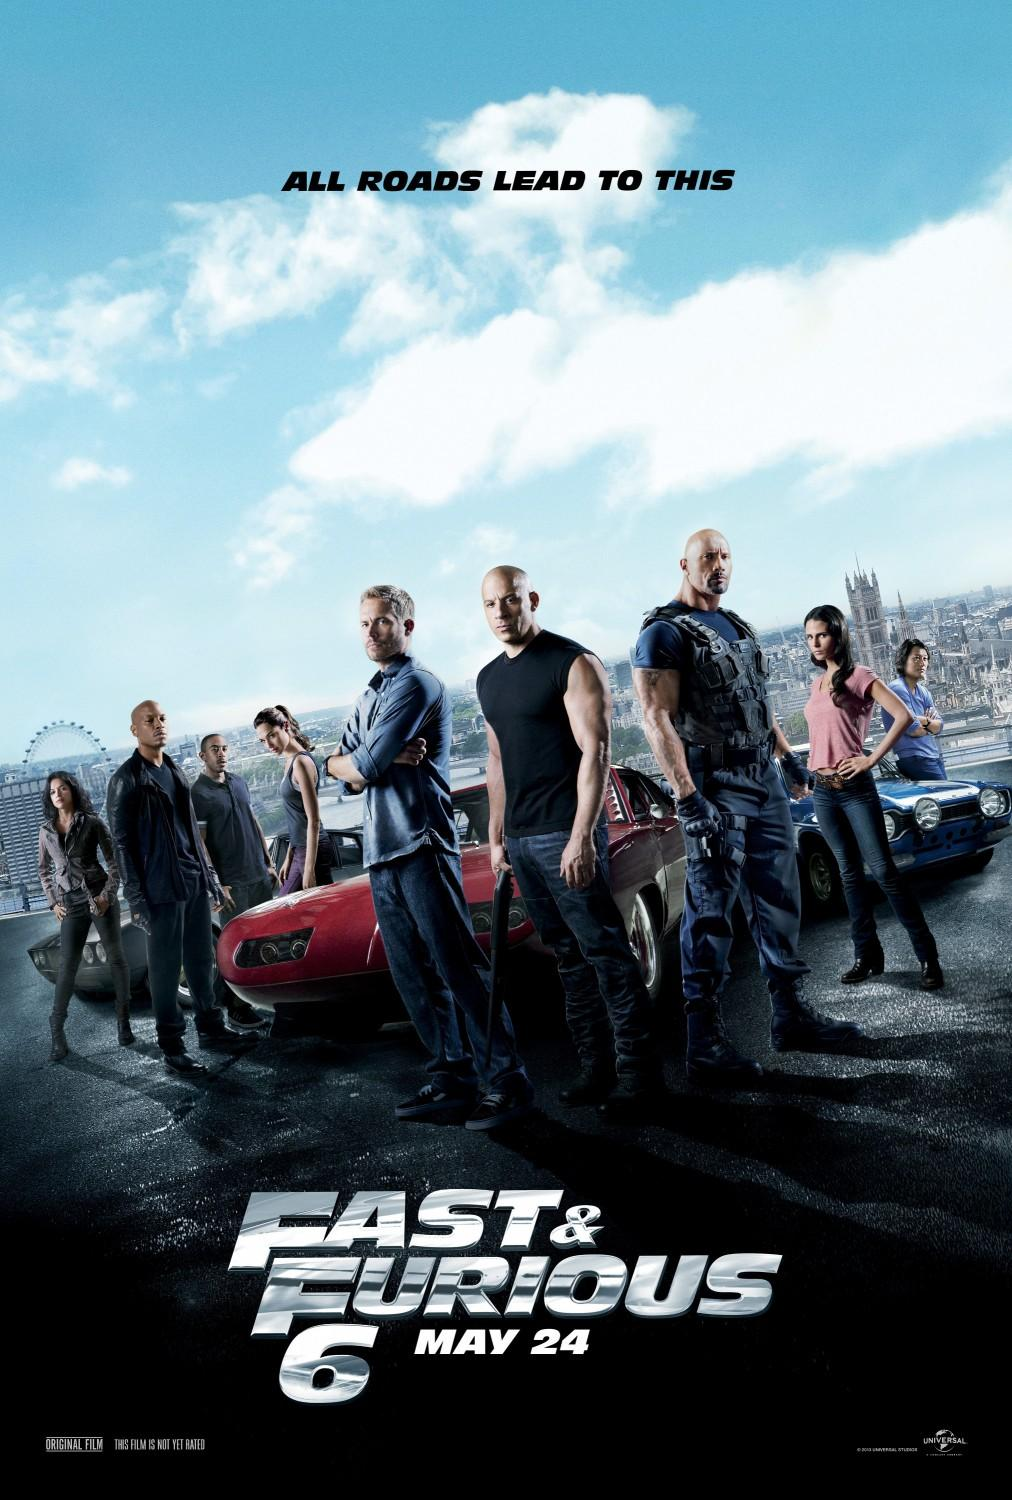 Fast%20and%20Furious%206%202013.1 1 دانلود فیلم Fast and Furious 6 2013